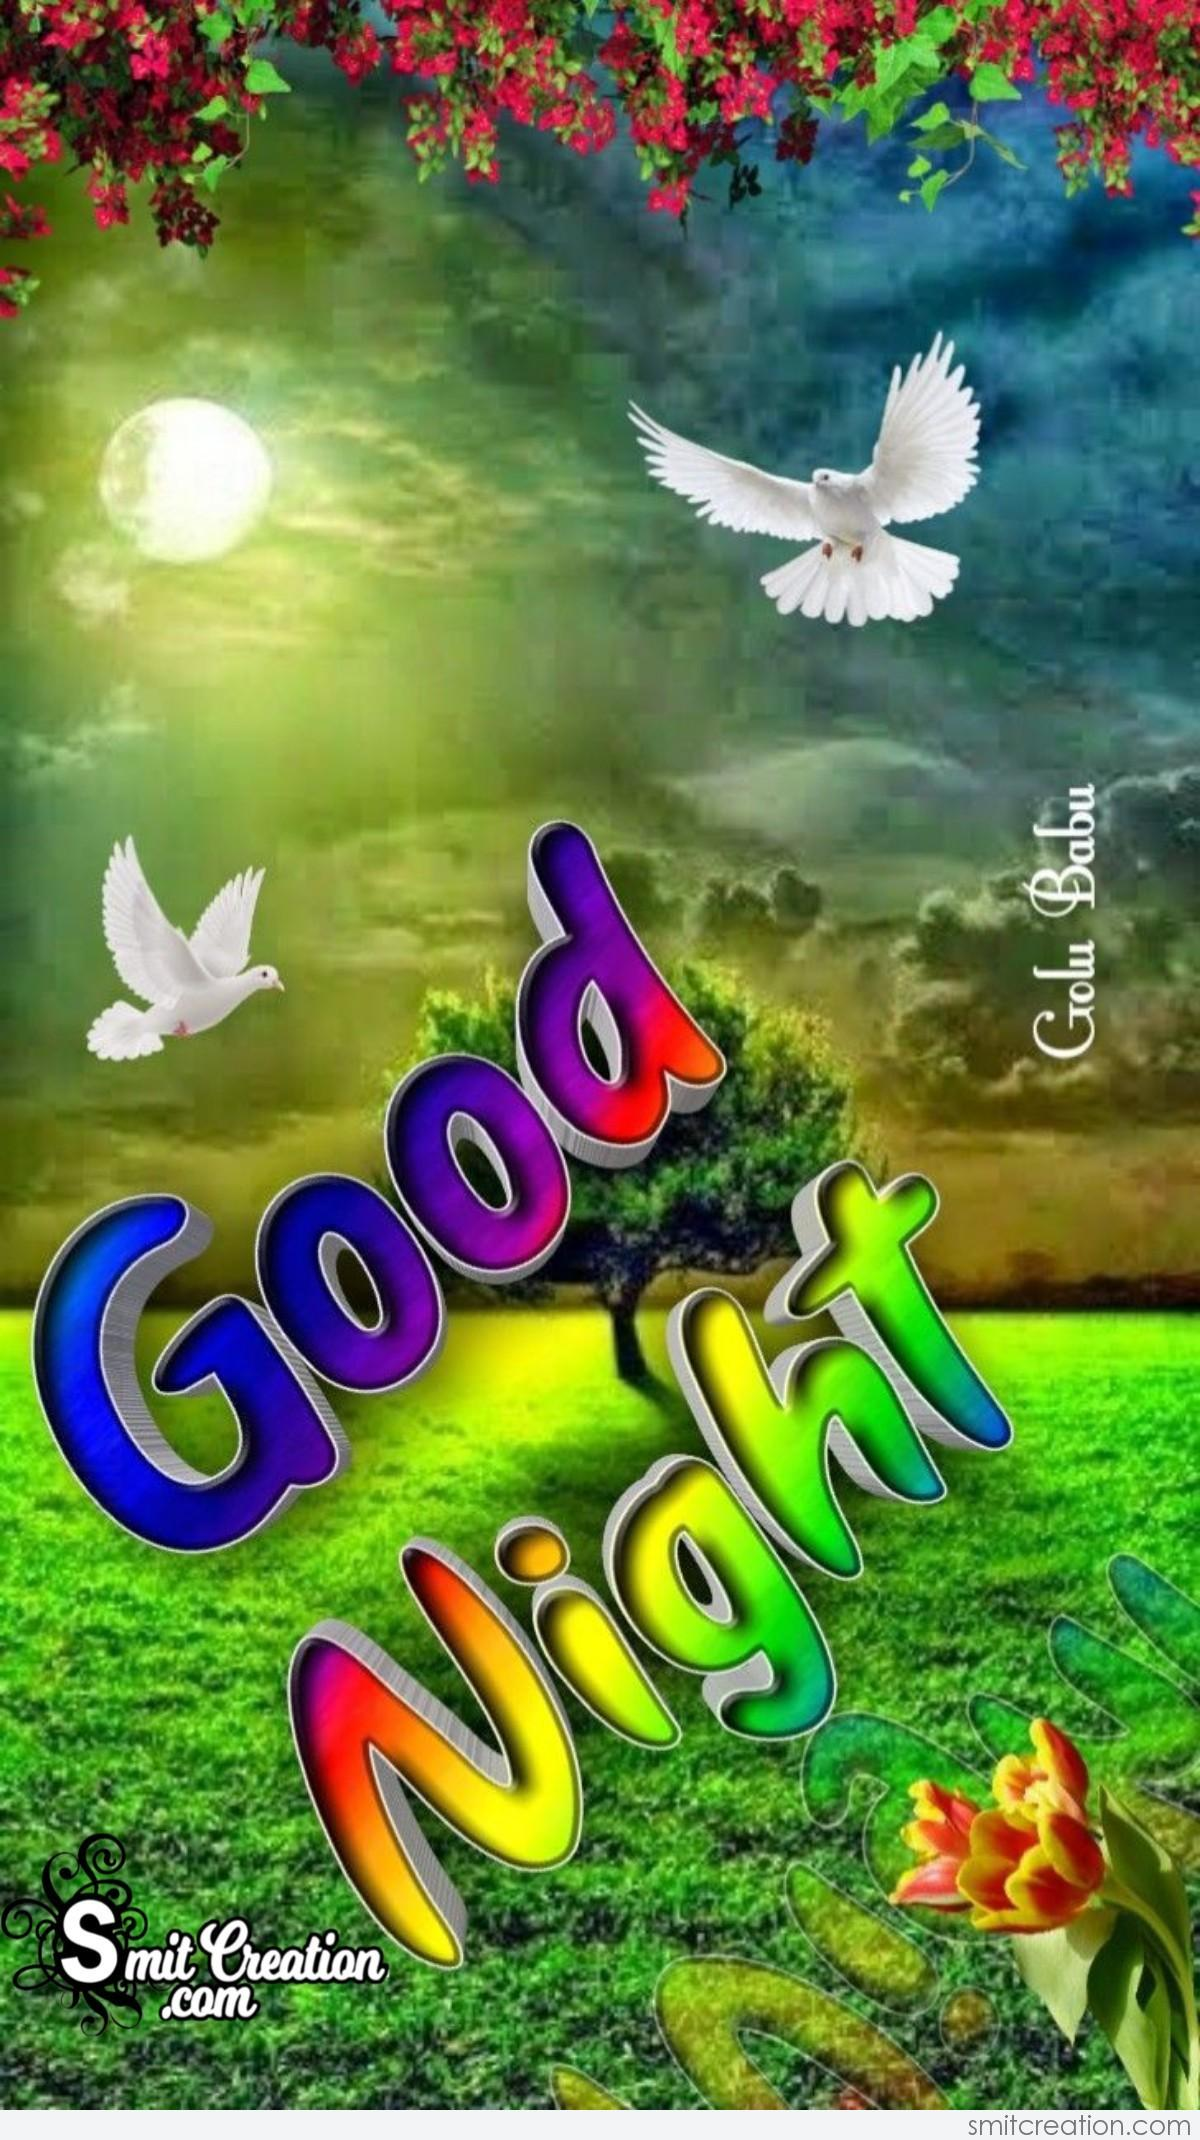 Good Night Pictures and Graphics - SmitCreation com